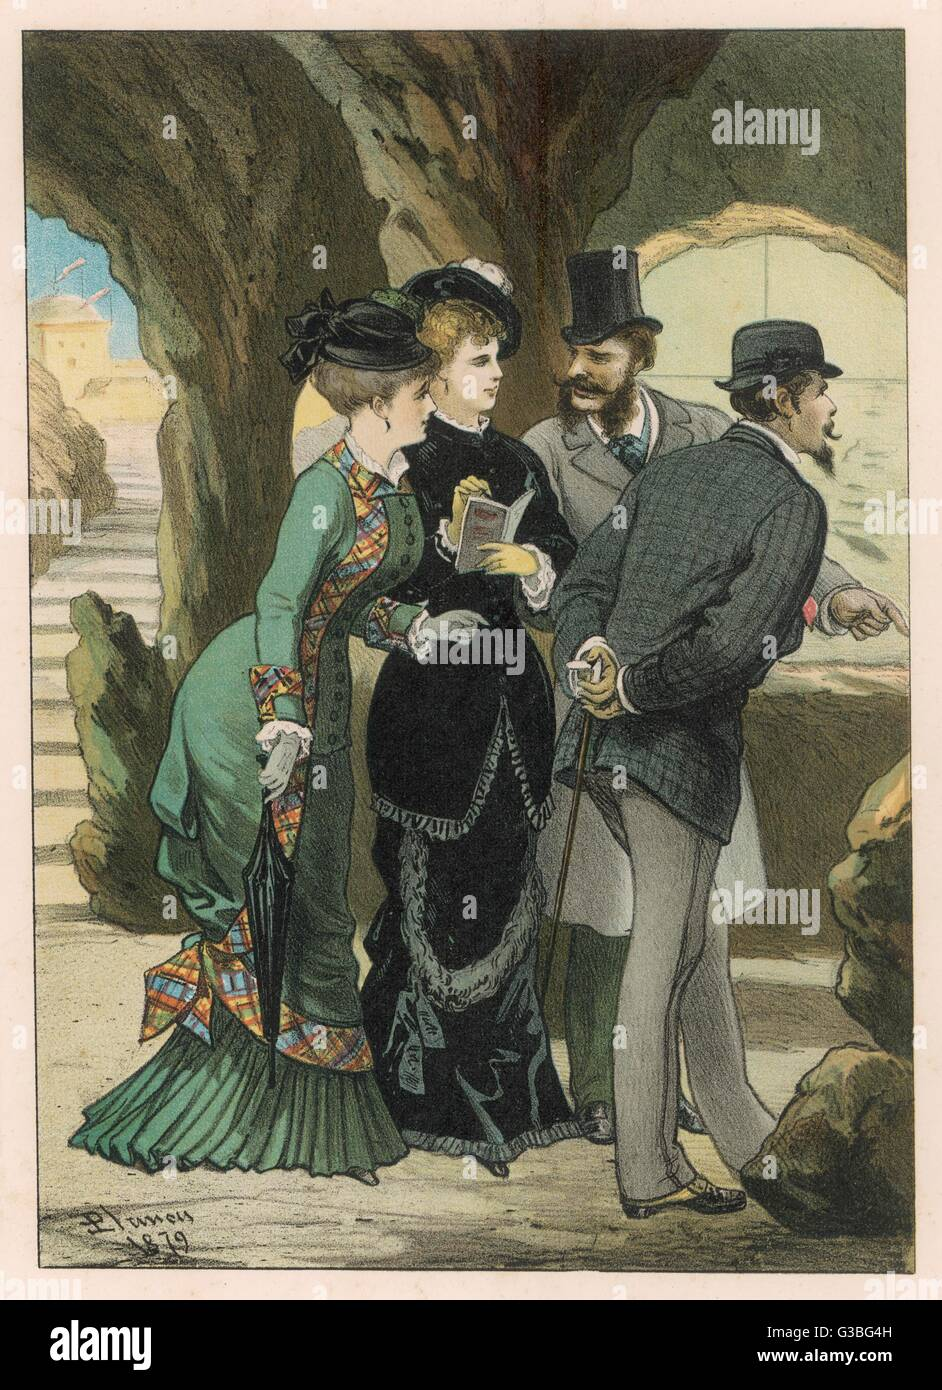 Two elegant couples visit an  aquarium.        Date: 1879 Stock Photo